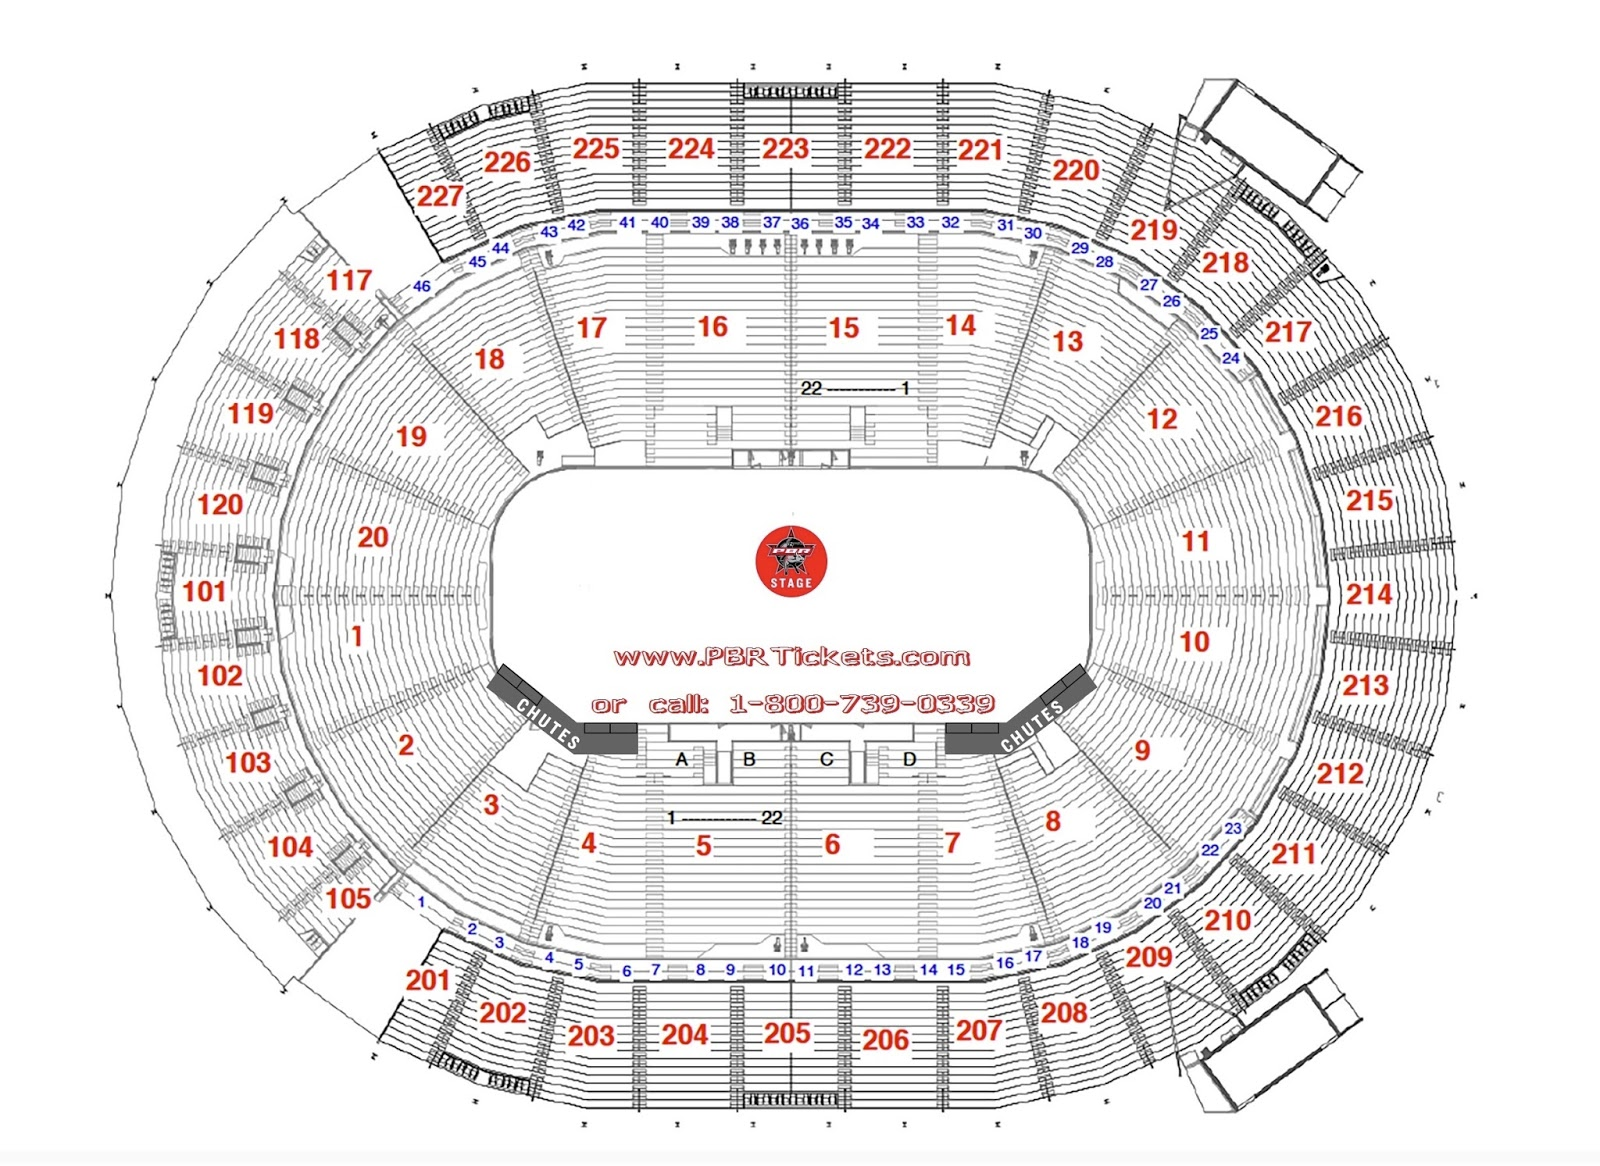 Las Vegas Arena Seating Chart George Strait Pbr World